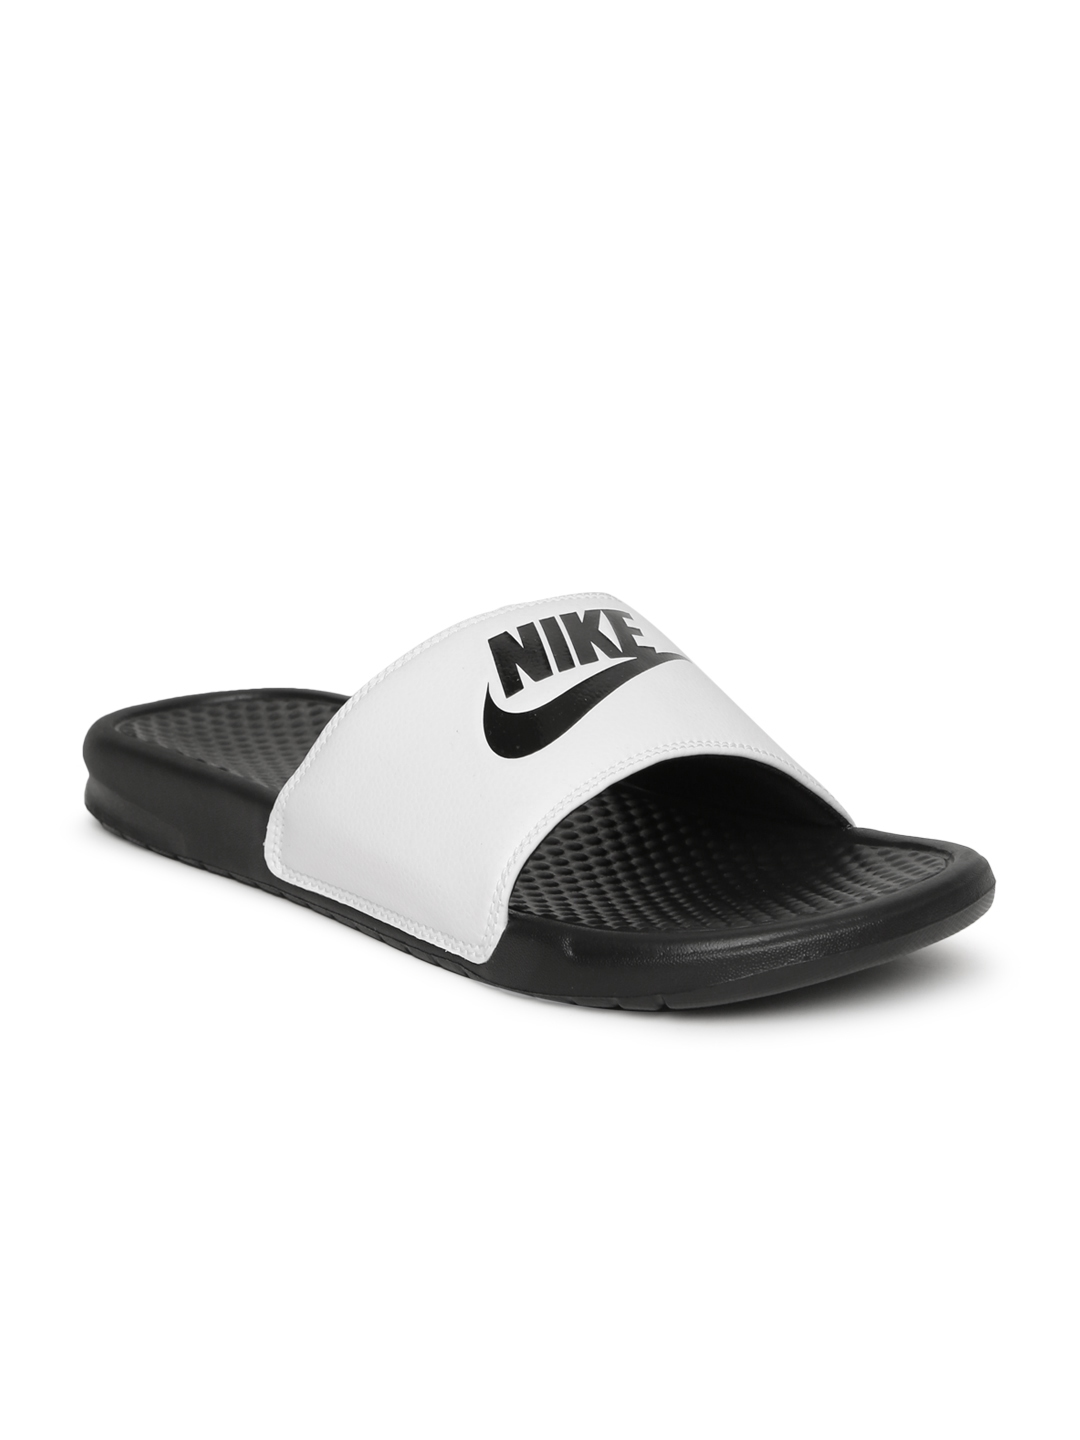 0015aa8783 Buy Nike Men White   Black BENASSI JDI Printed Flip Flops - Flip ...